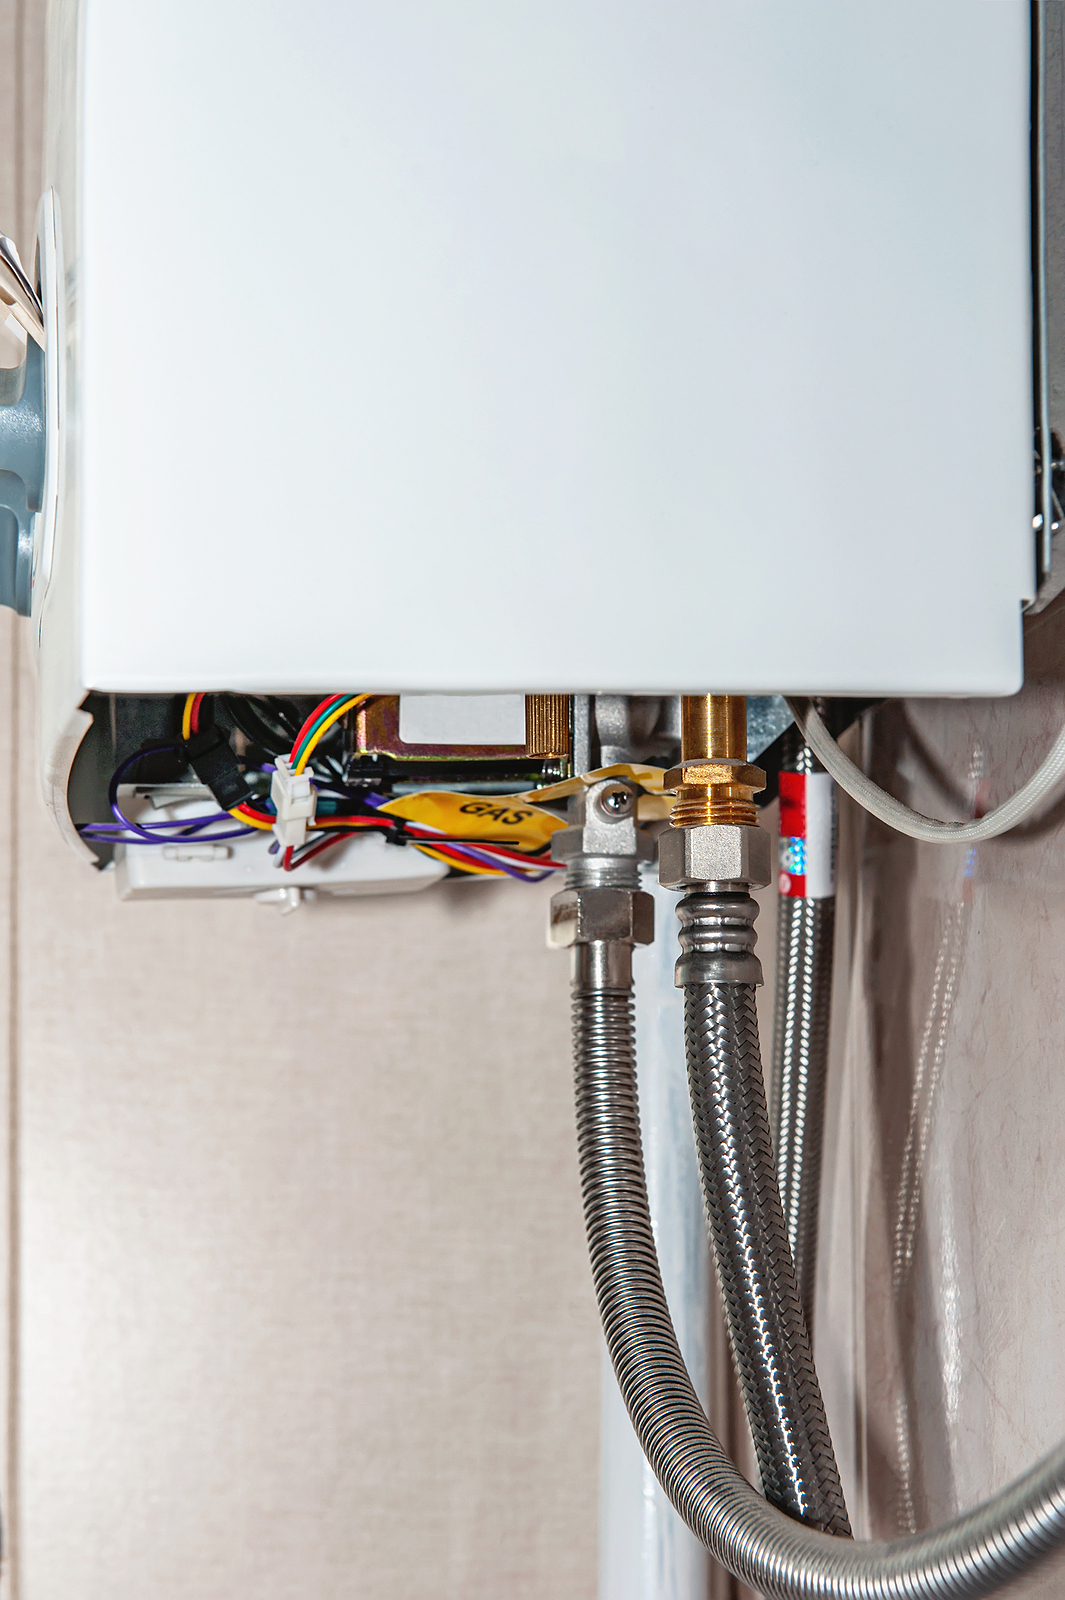 effective gas hot water system connection